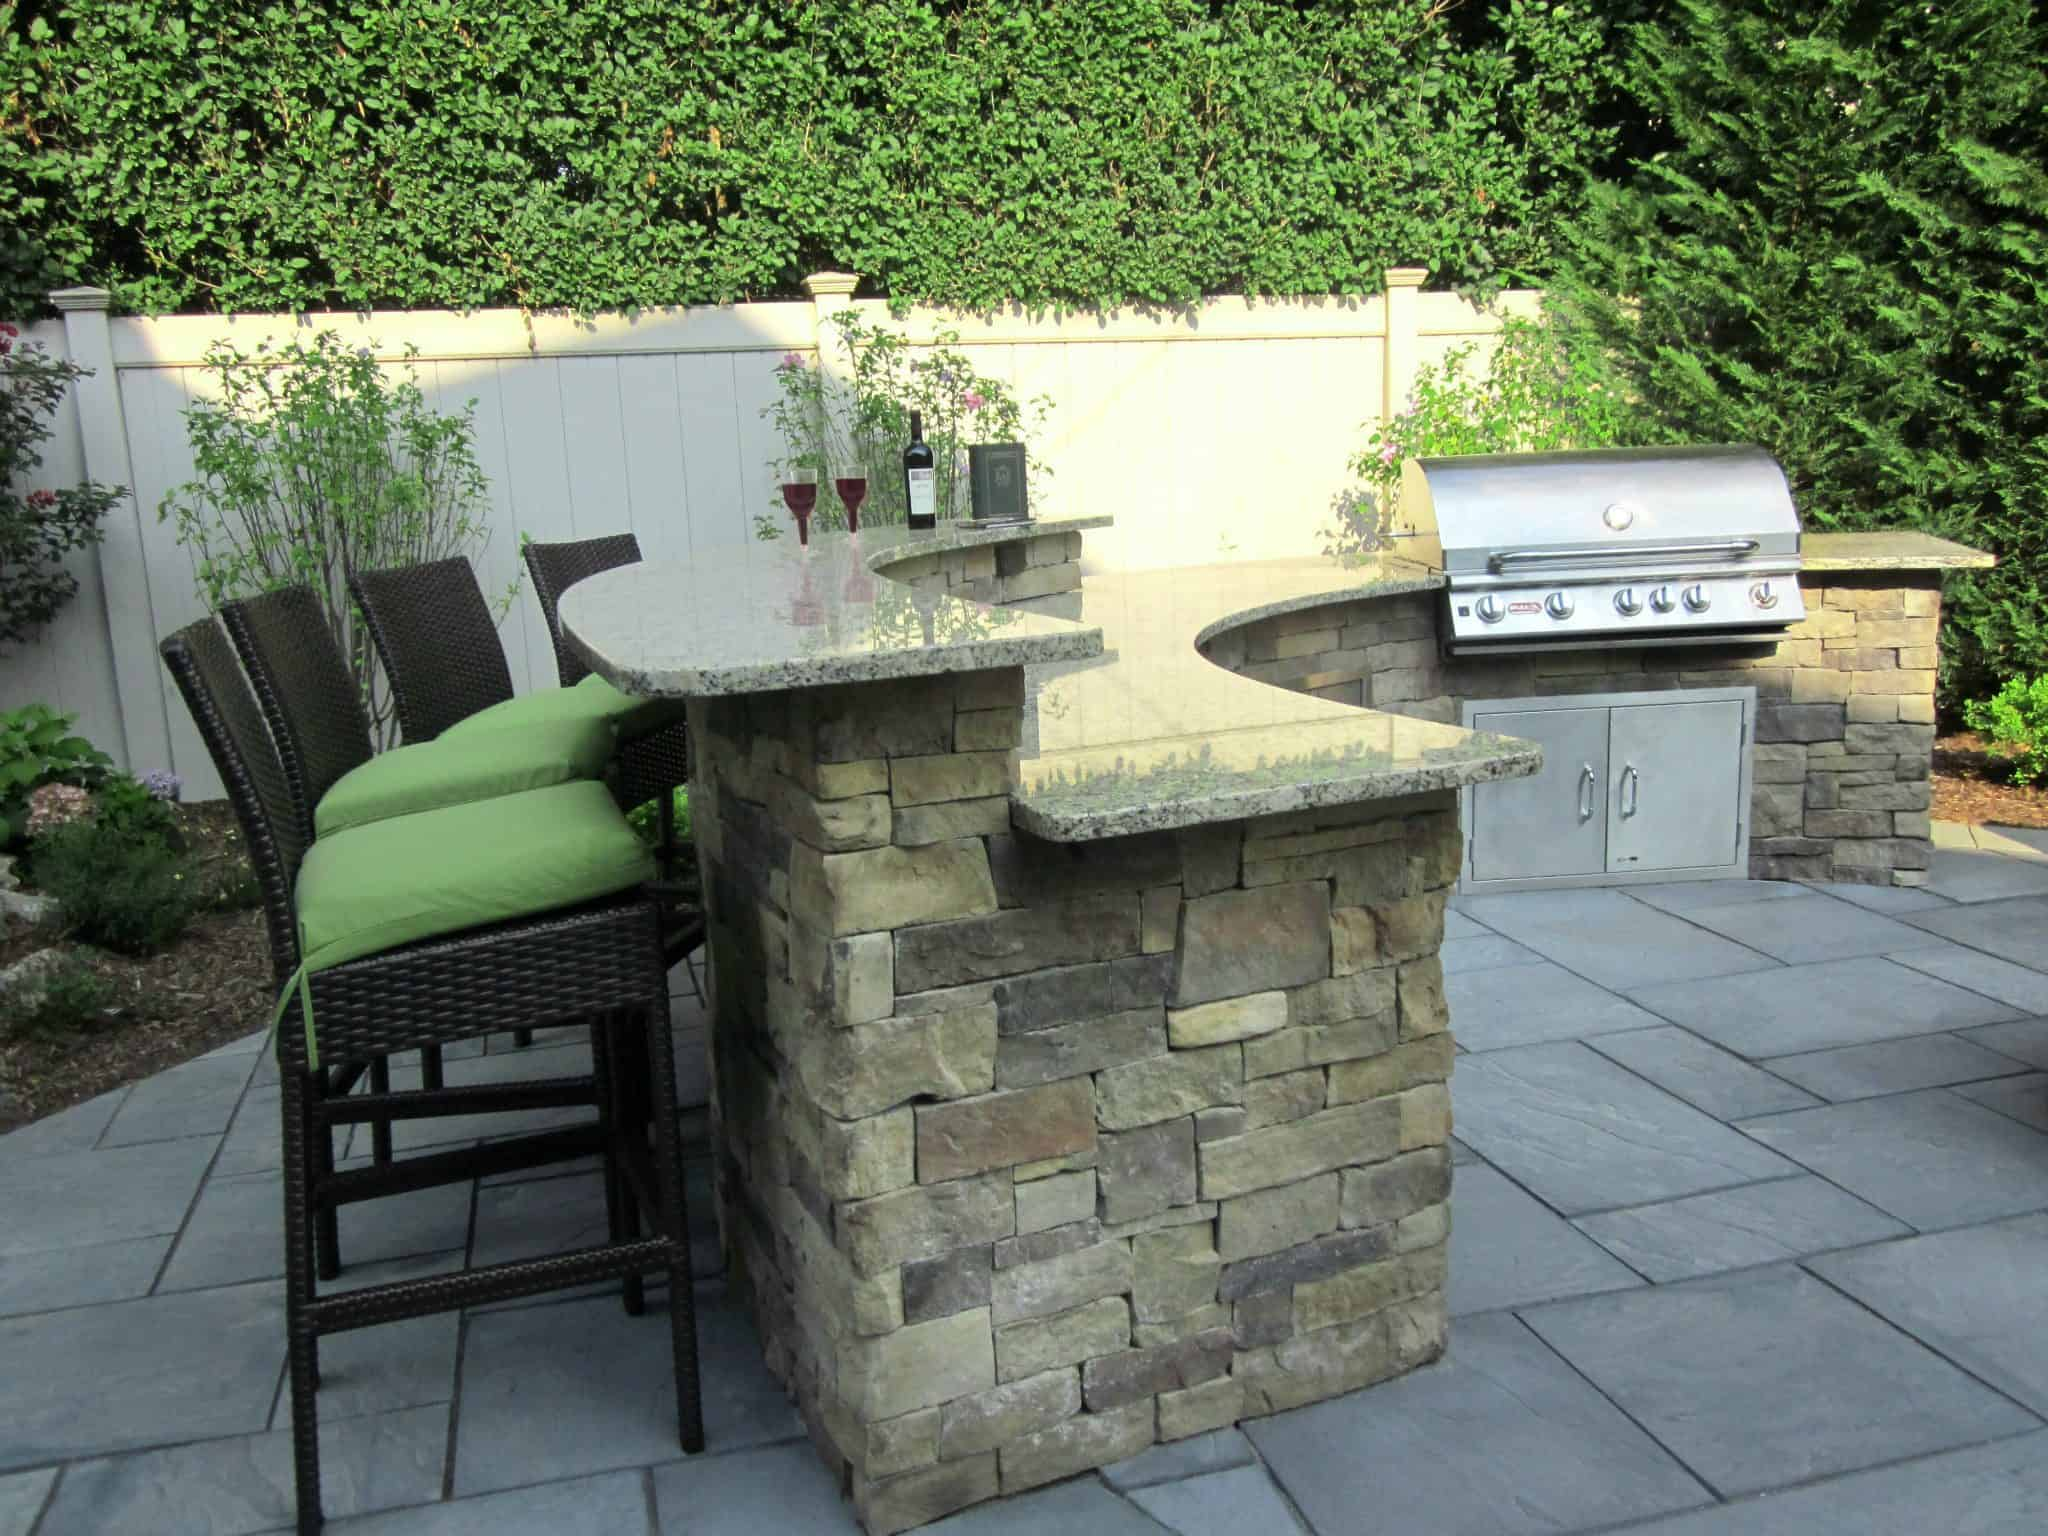 photos of outdoor kitchens and bars round glass kitchen tables long island